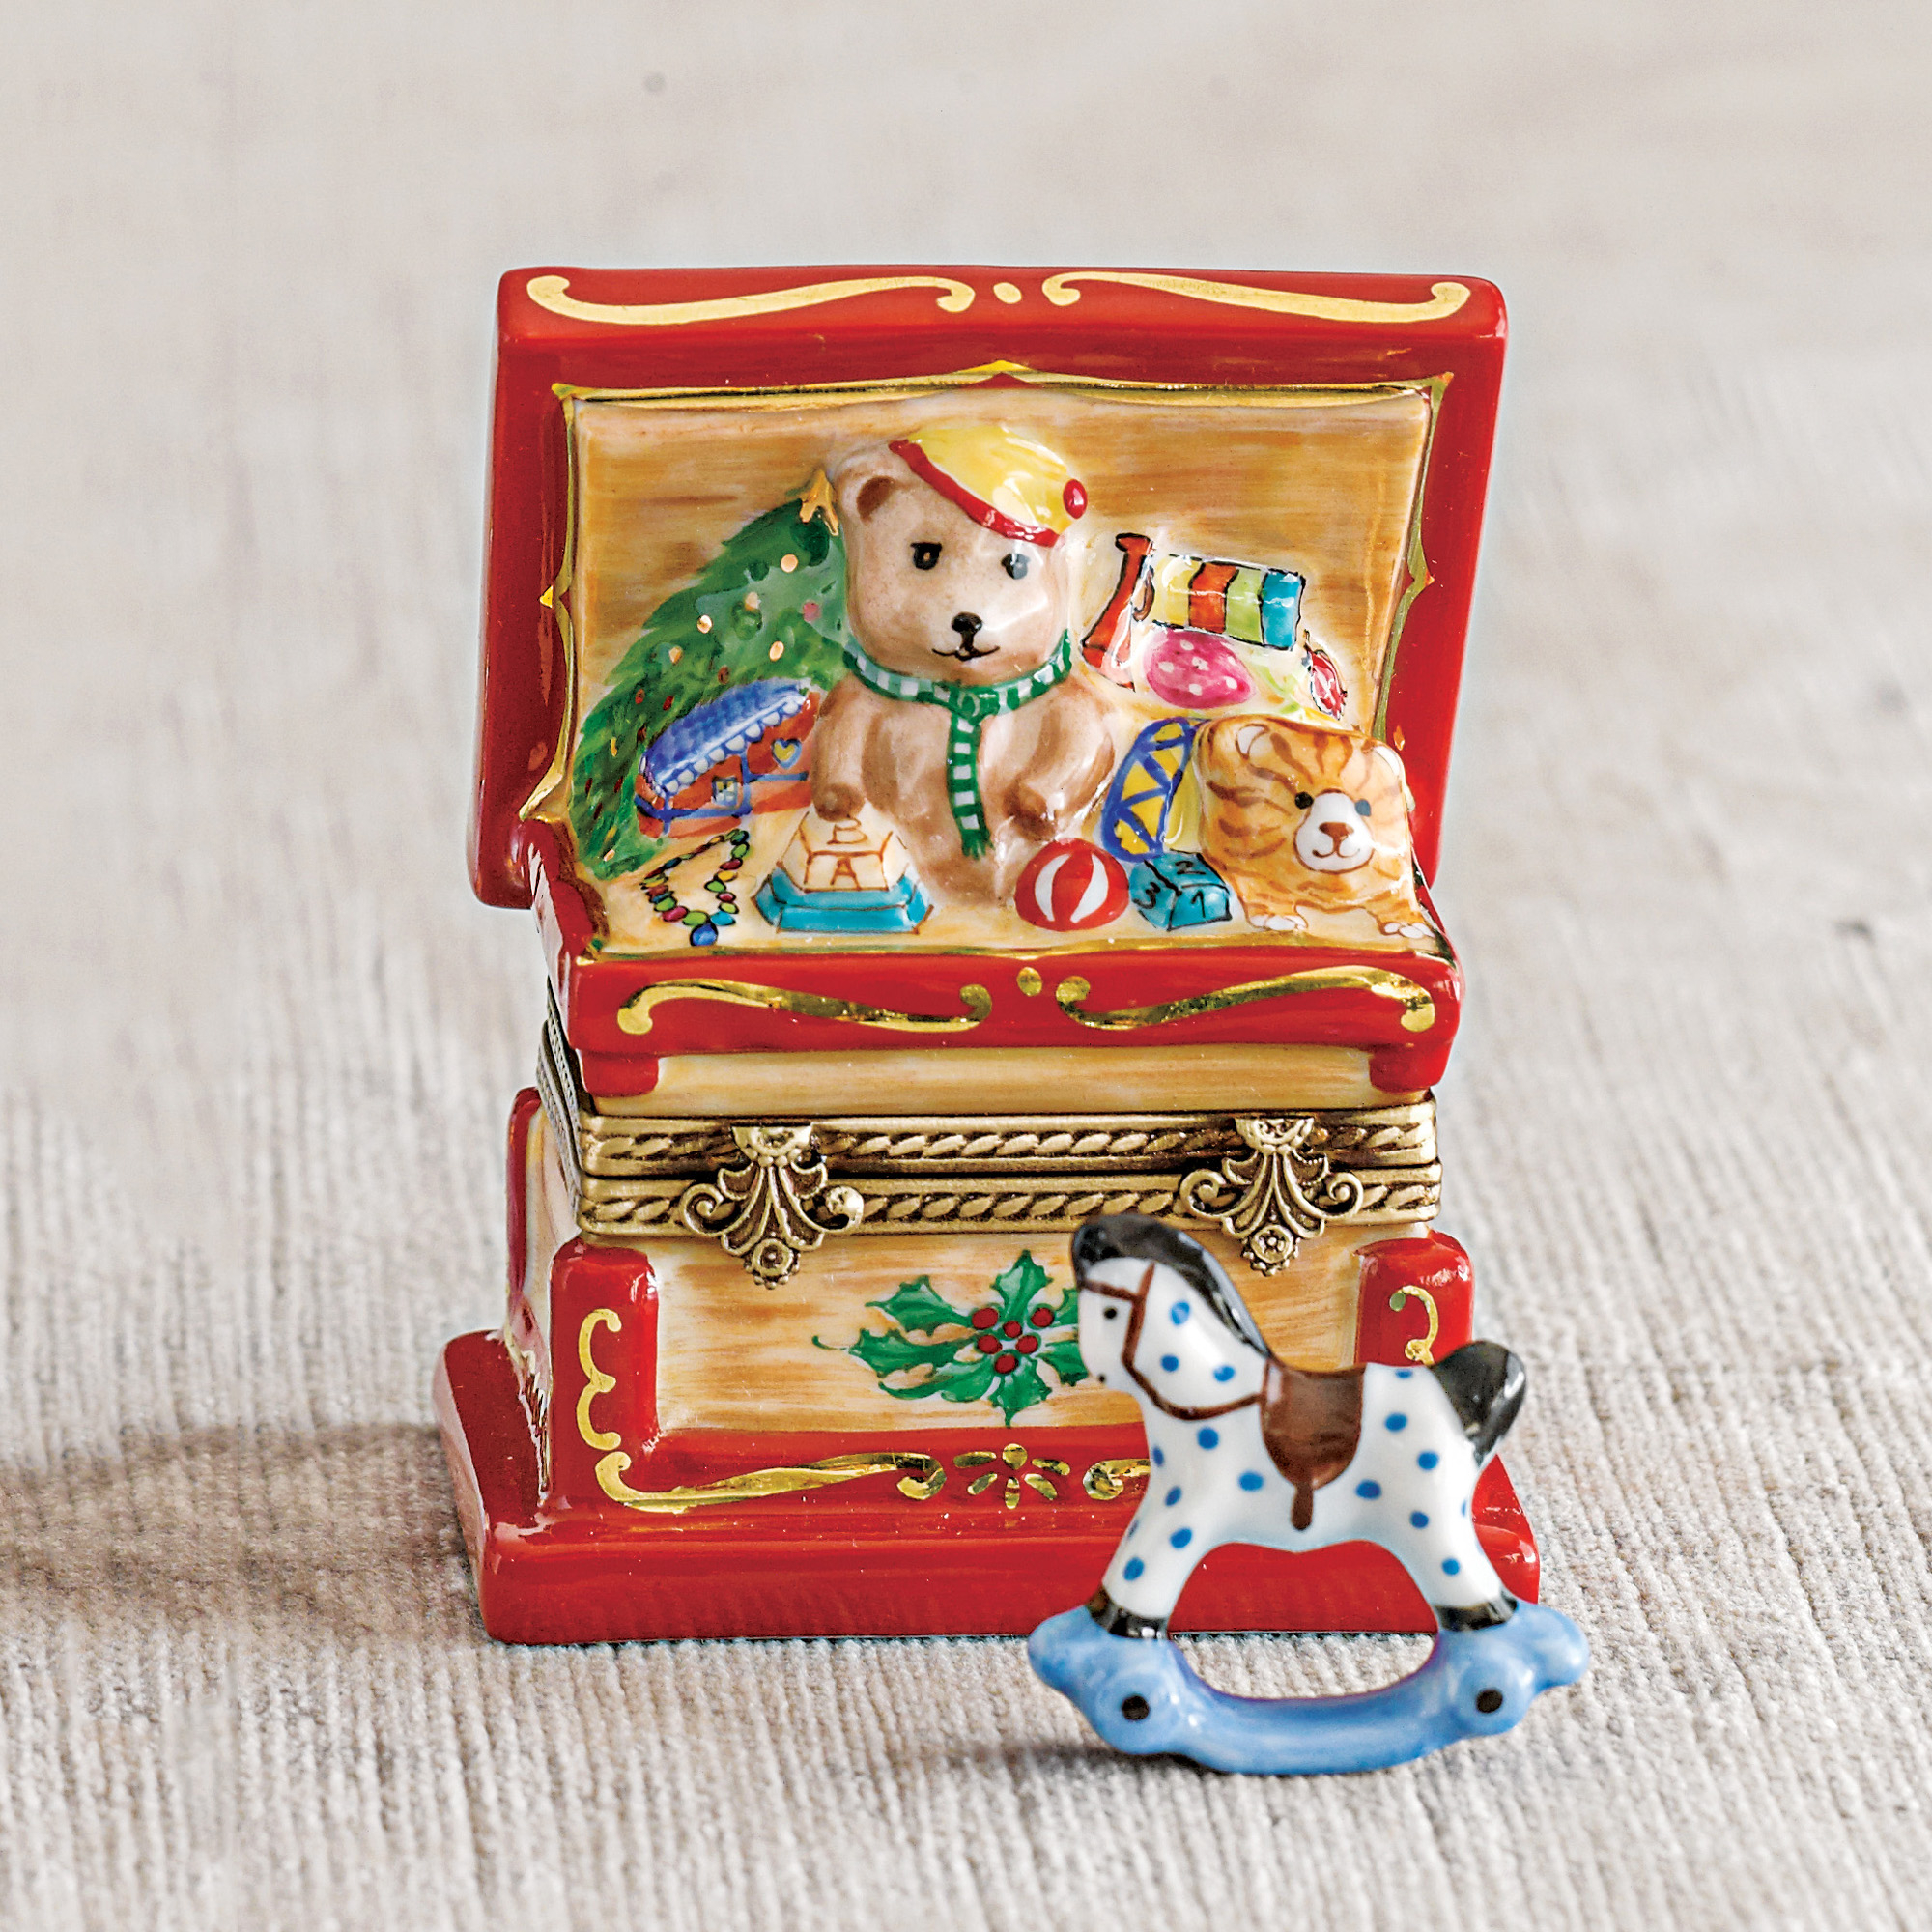 Christmas Toy Box : Limoges christmas toy chest gump s